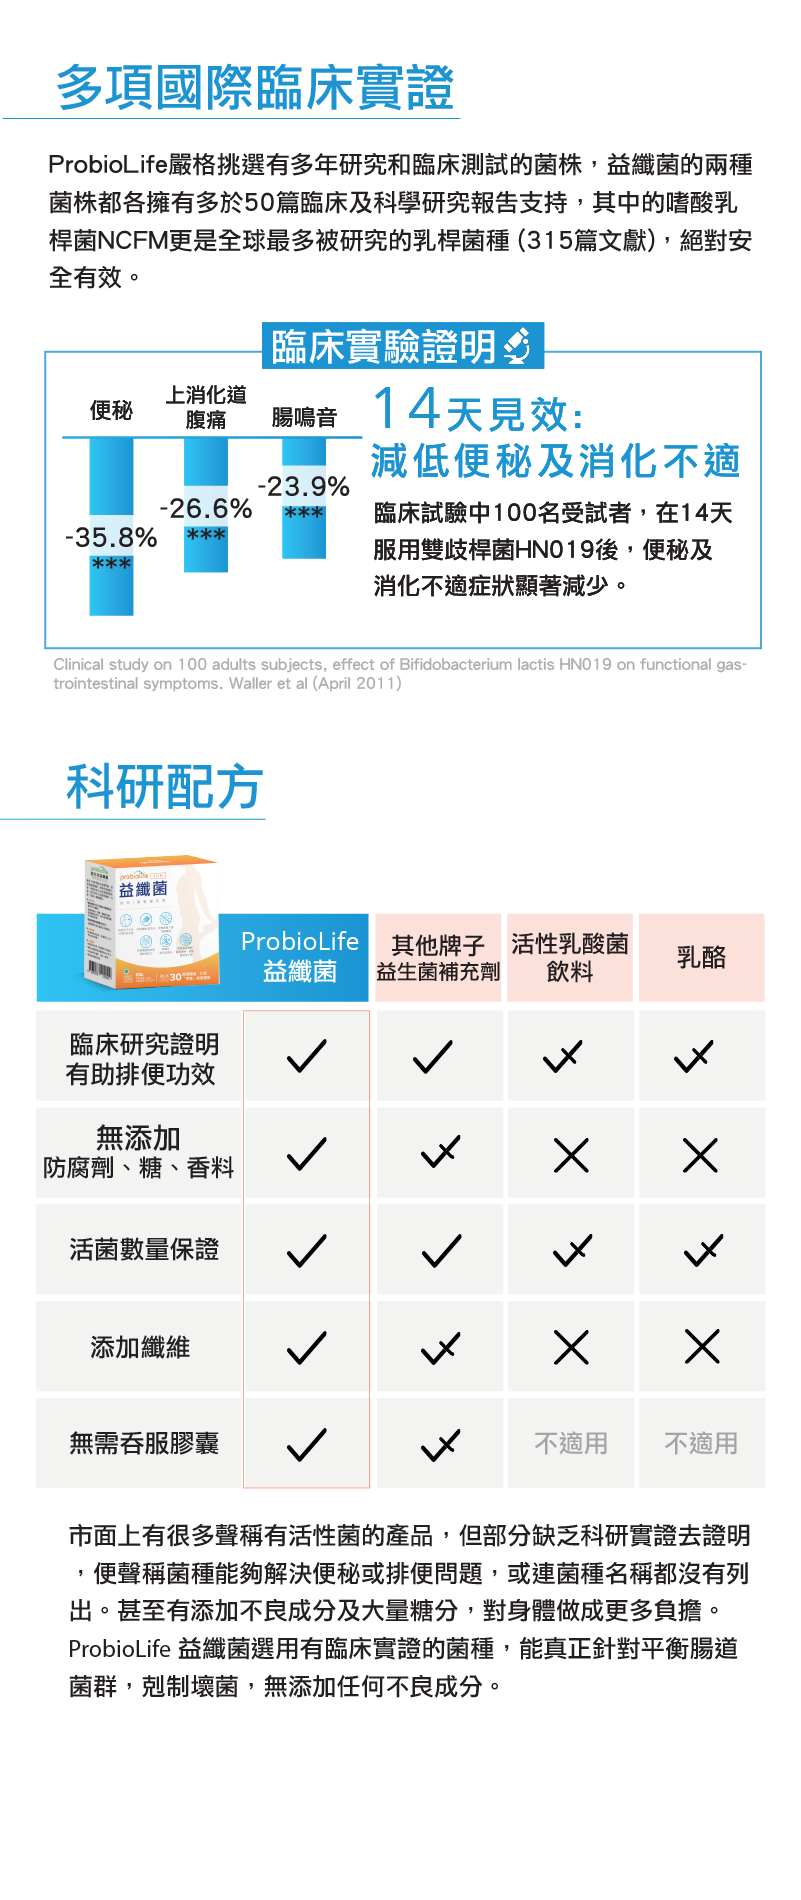 ProbioLife probiotics efficacy 益纖菌 益生菌